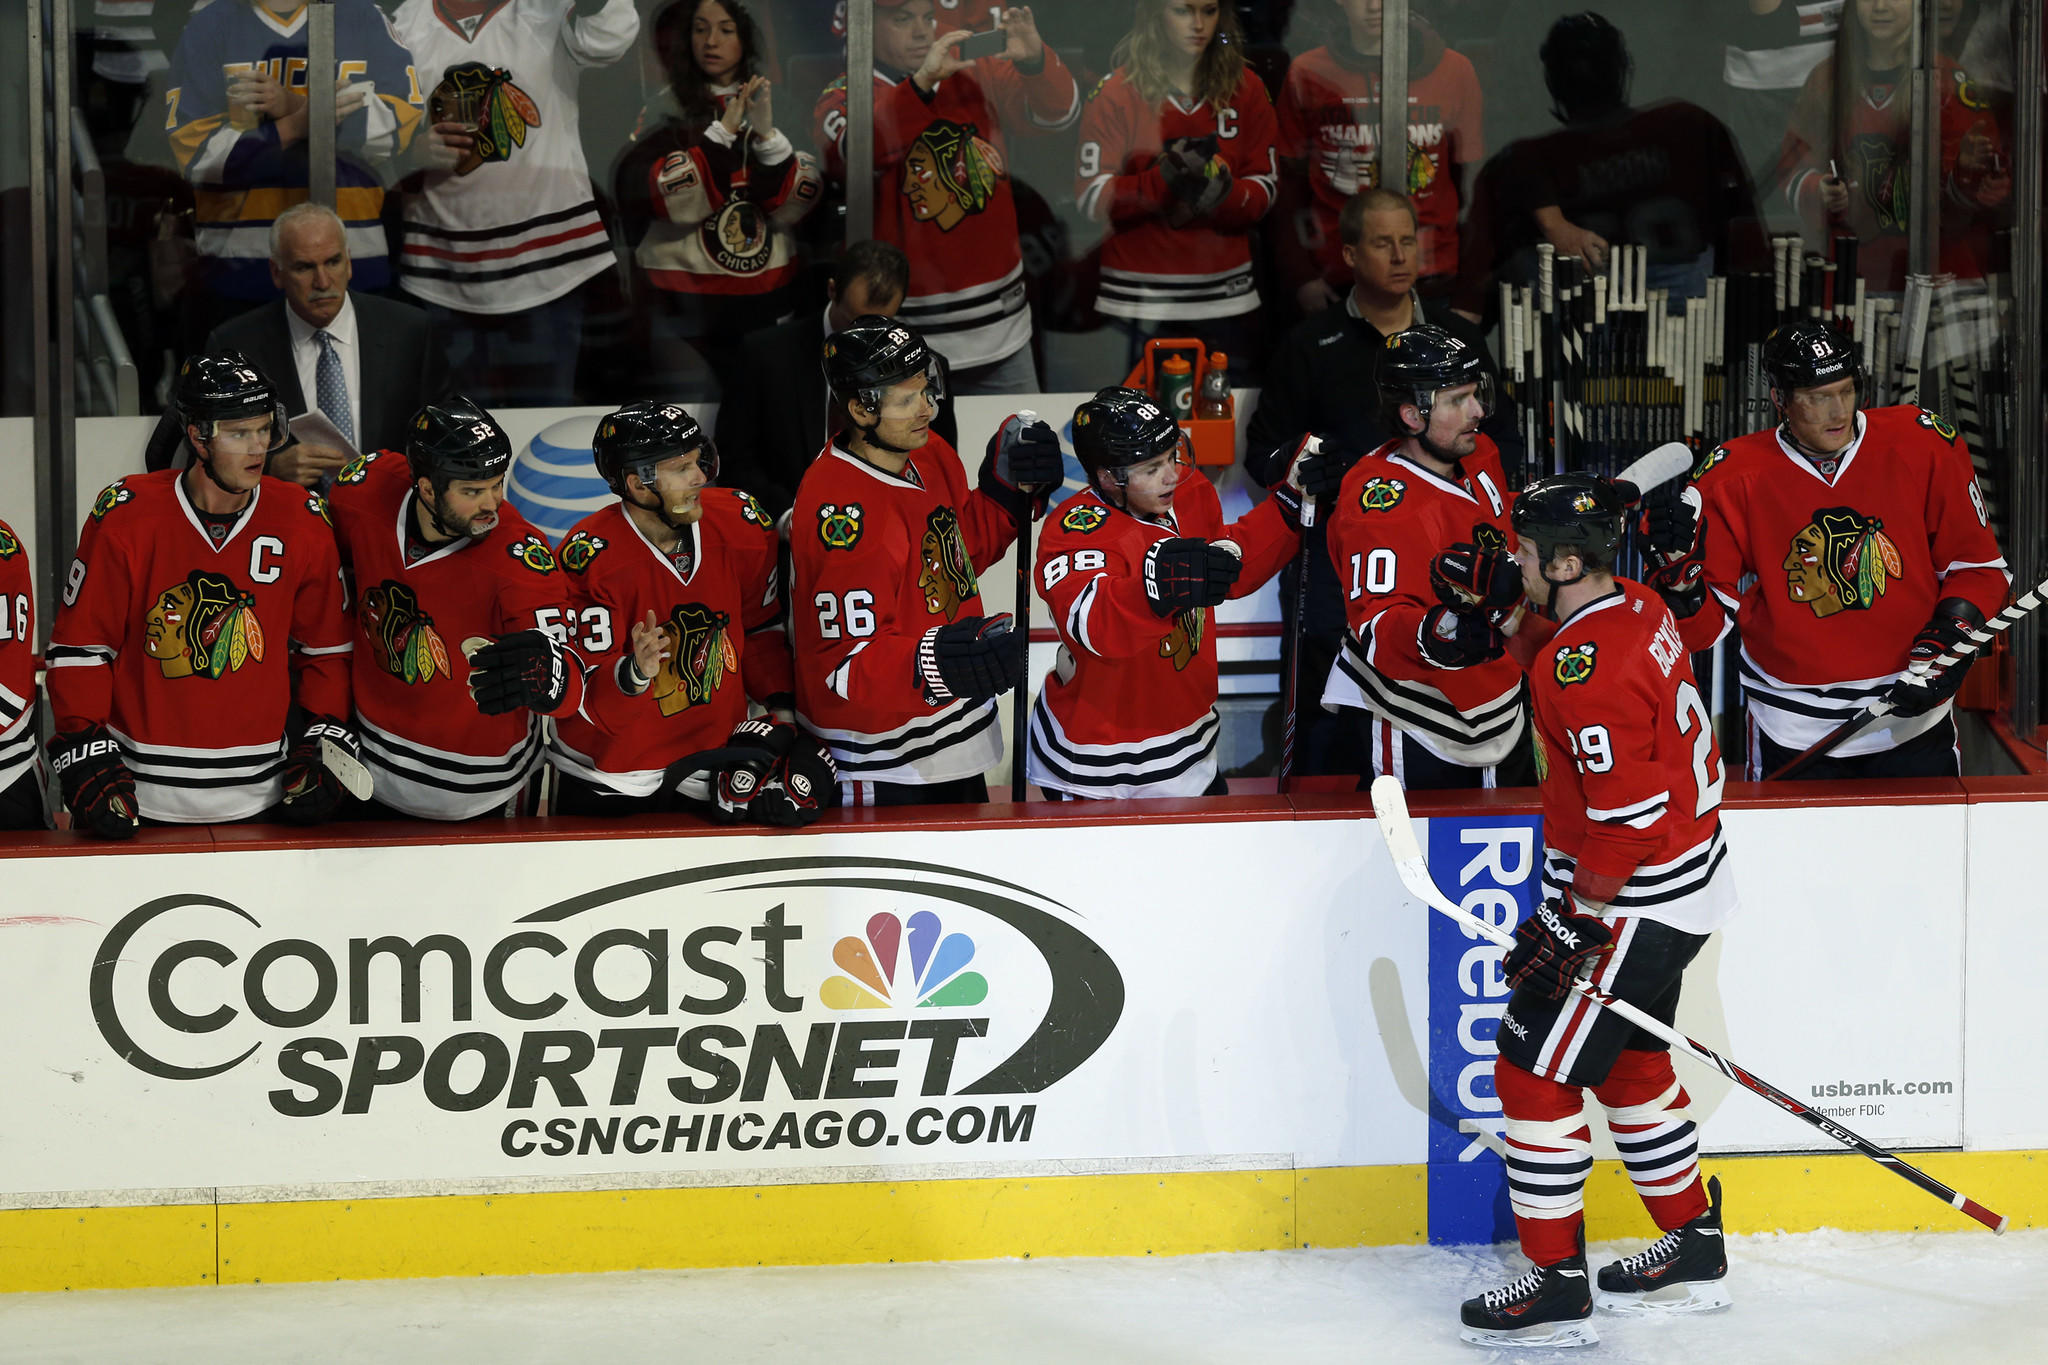 Bryan Bickell celebrates his goal with bench against Devils in the 2nd period.